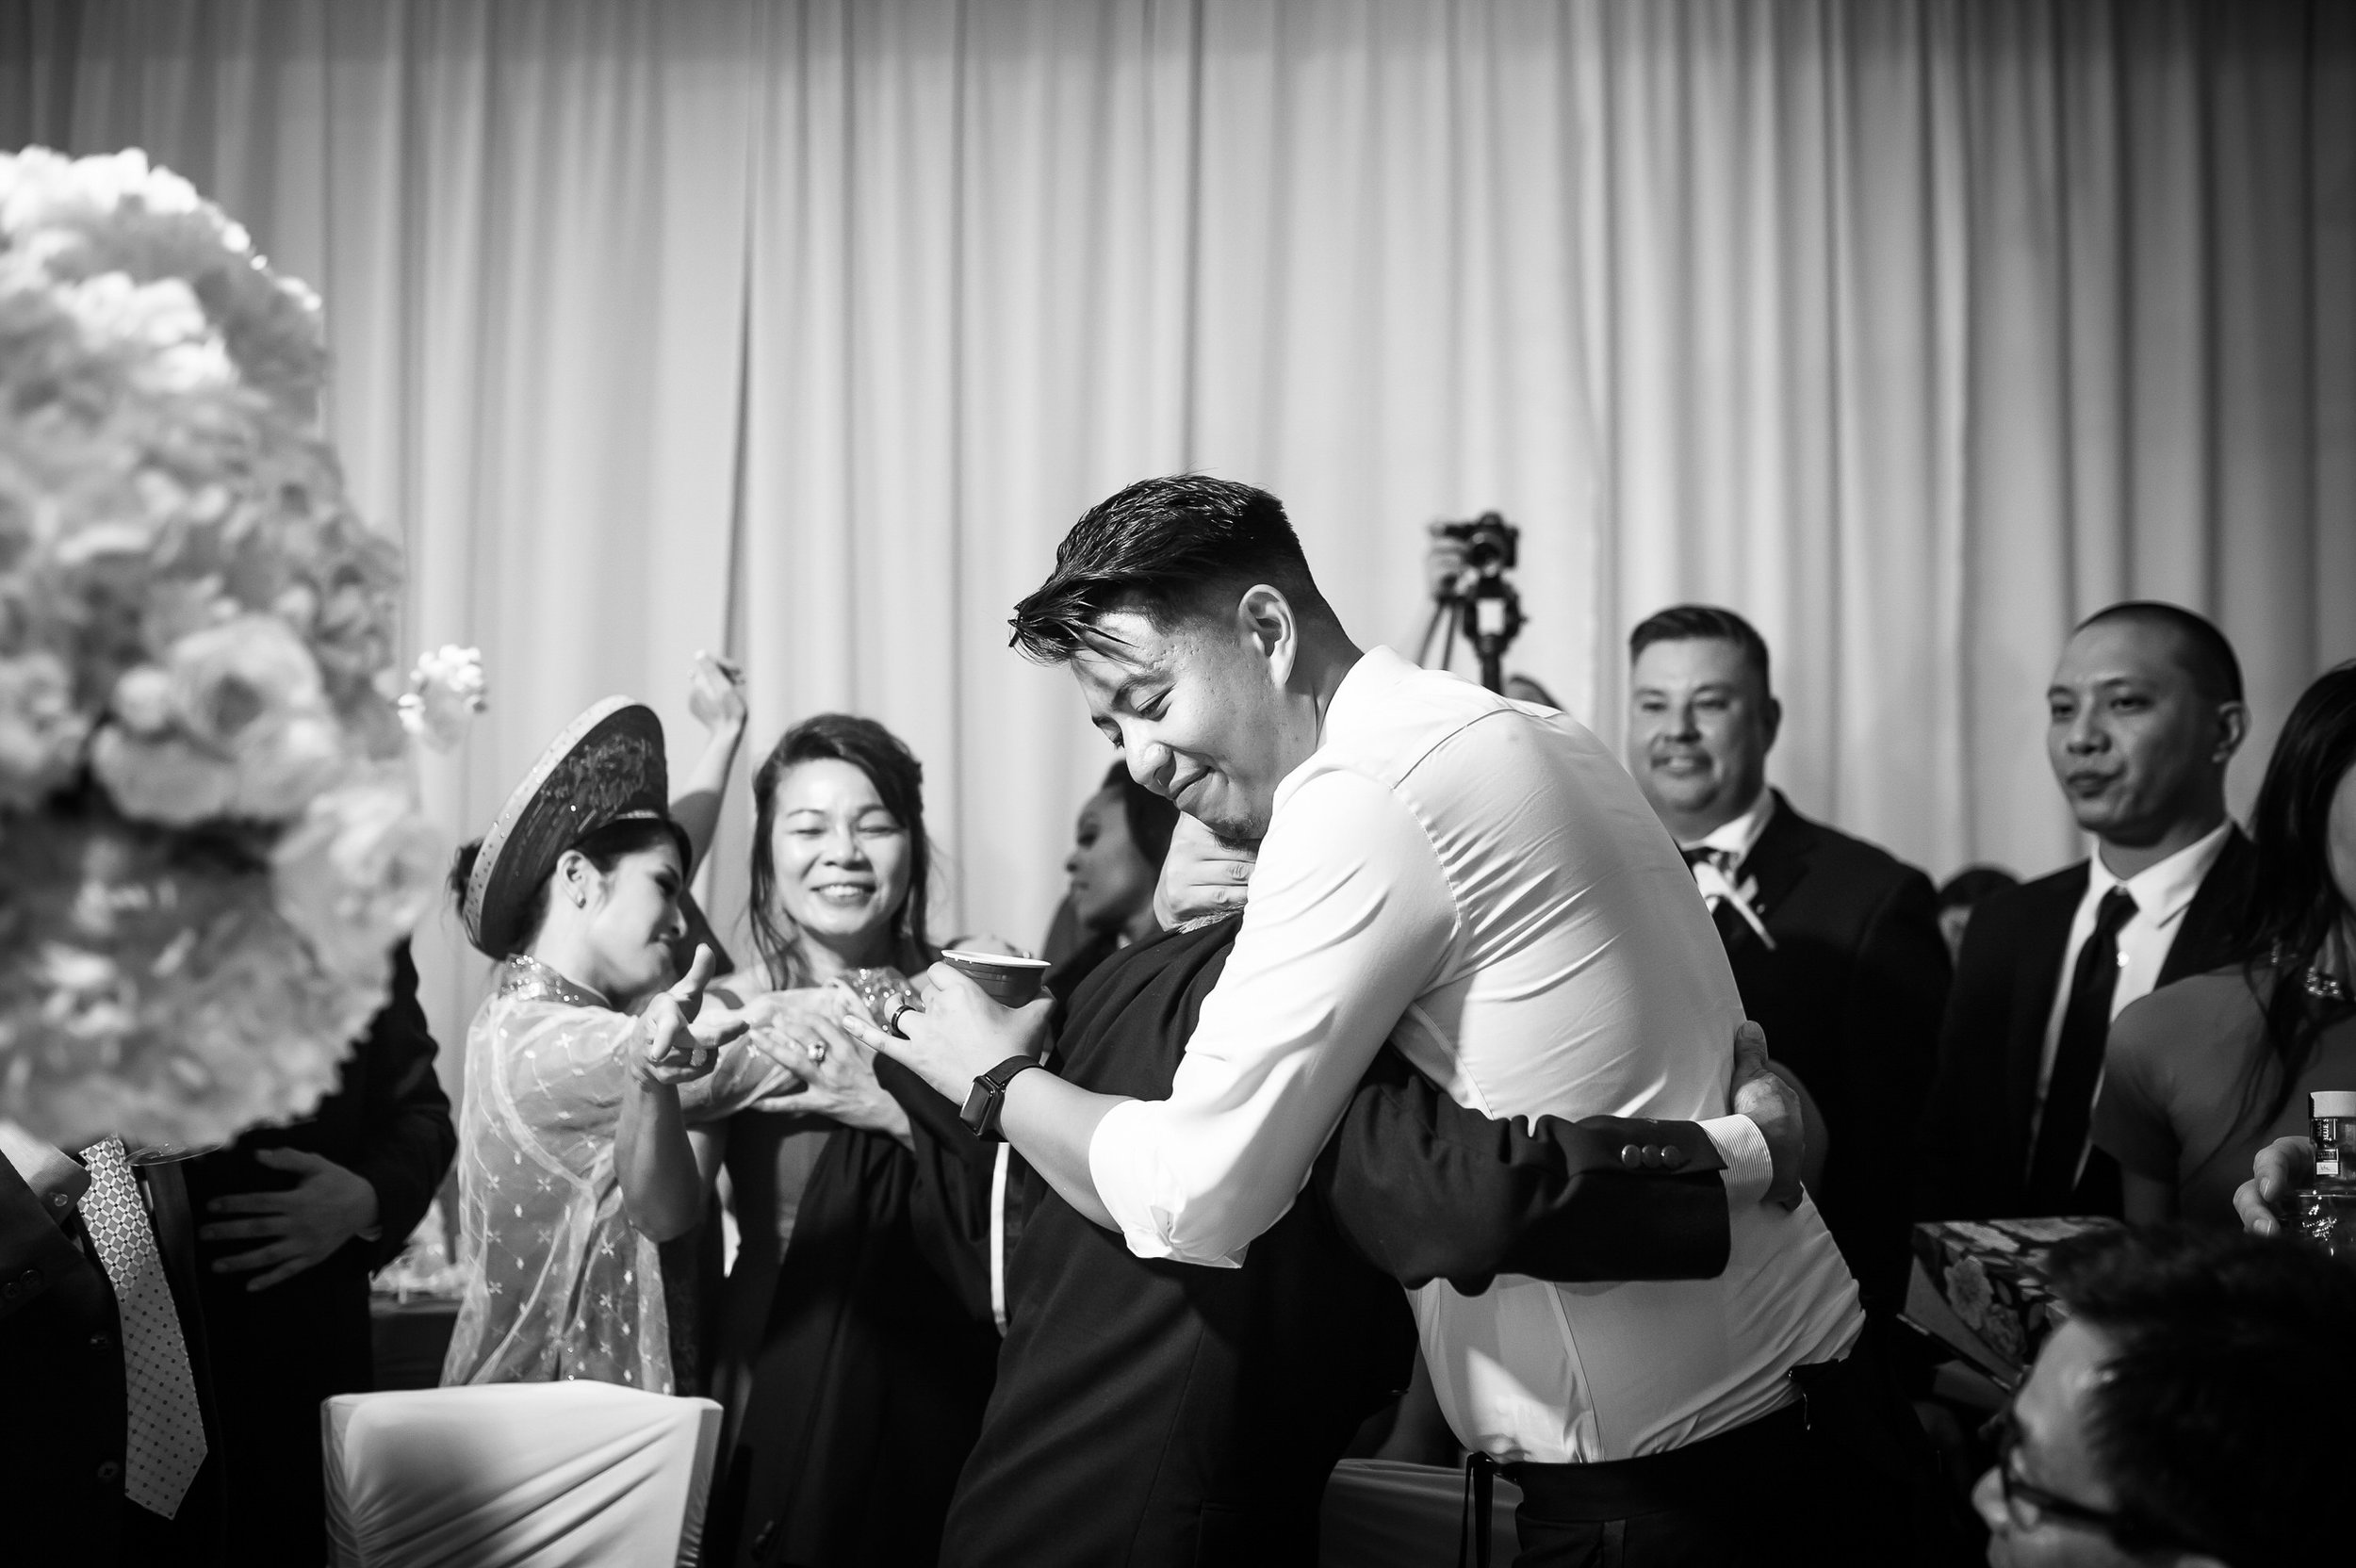 Dream_Wedding_Thanh_Thanh-21877.jpg